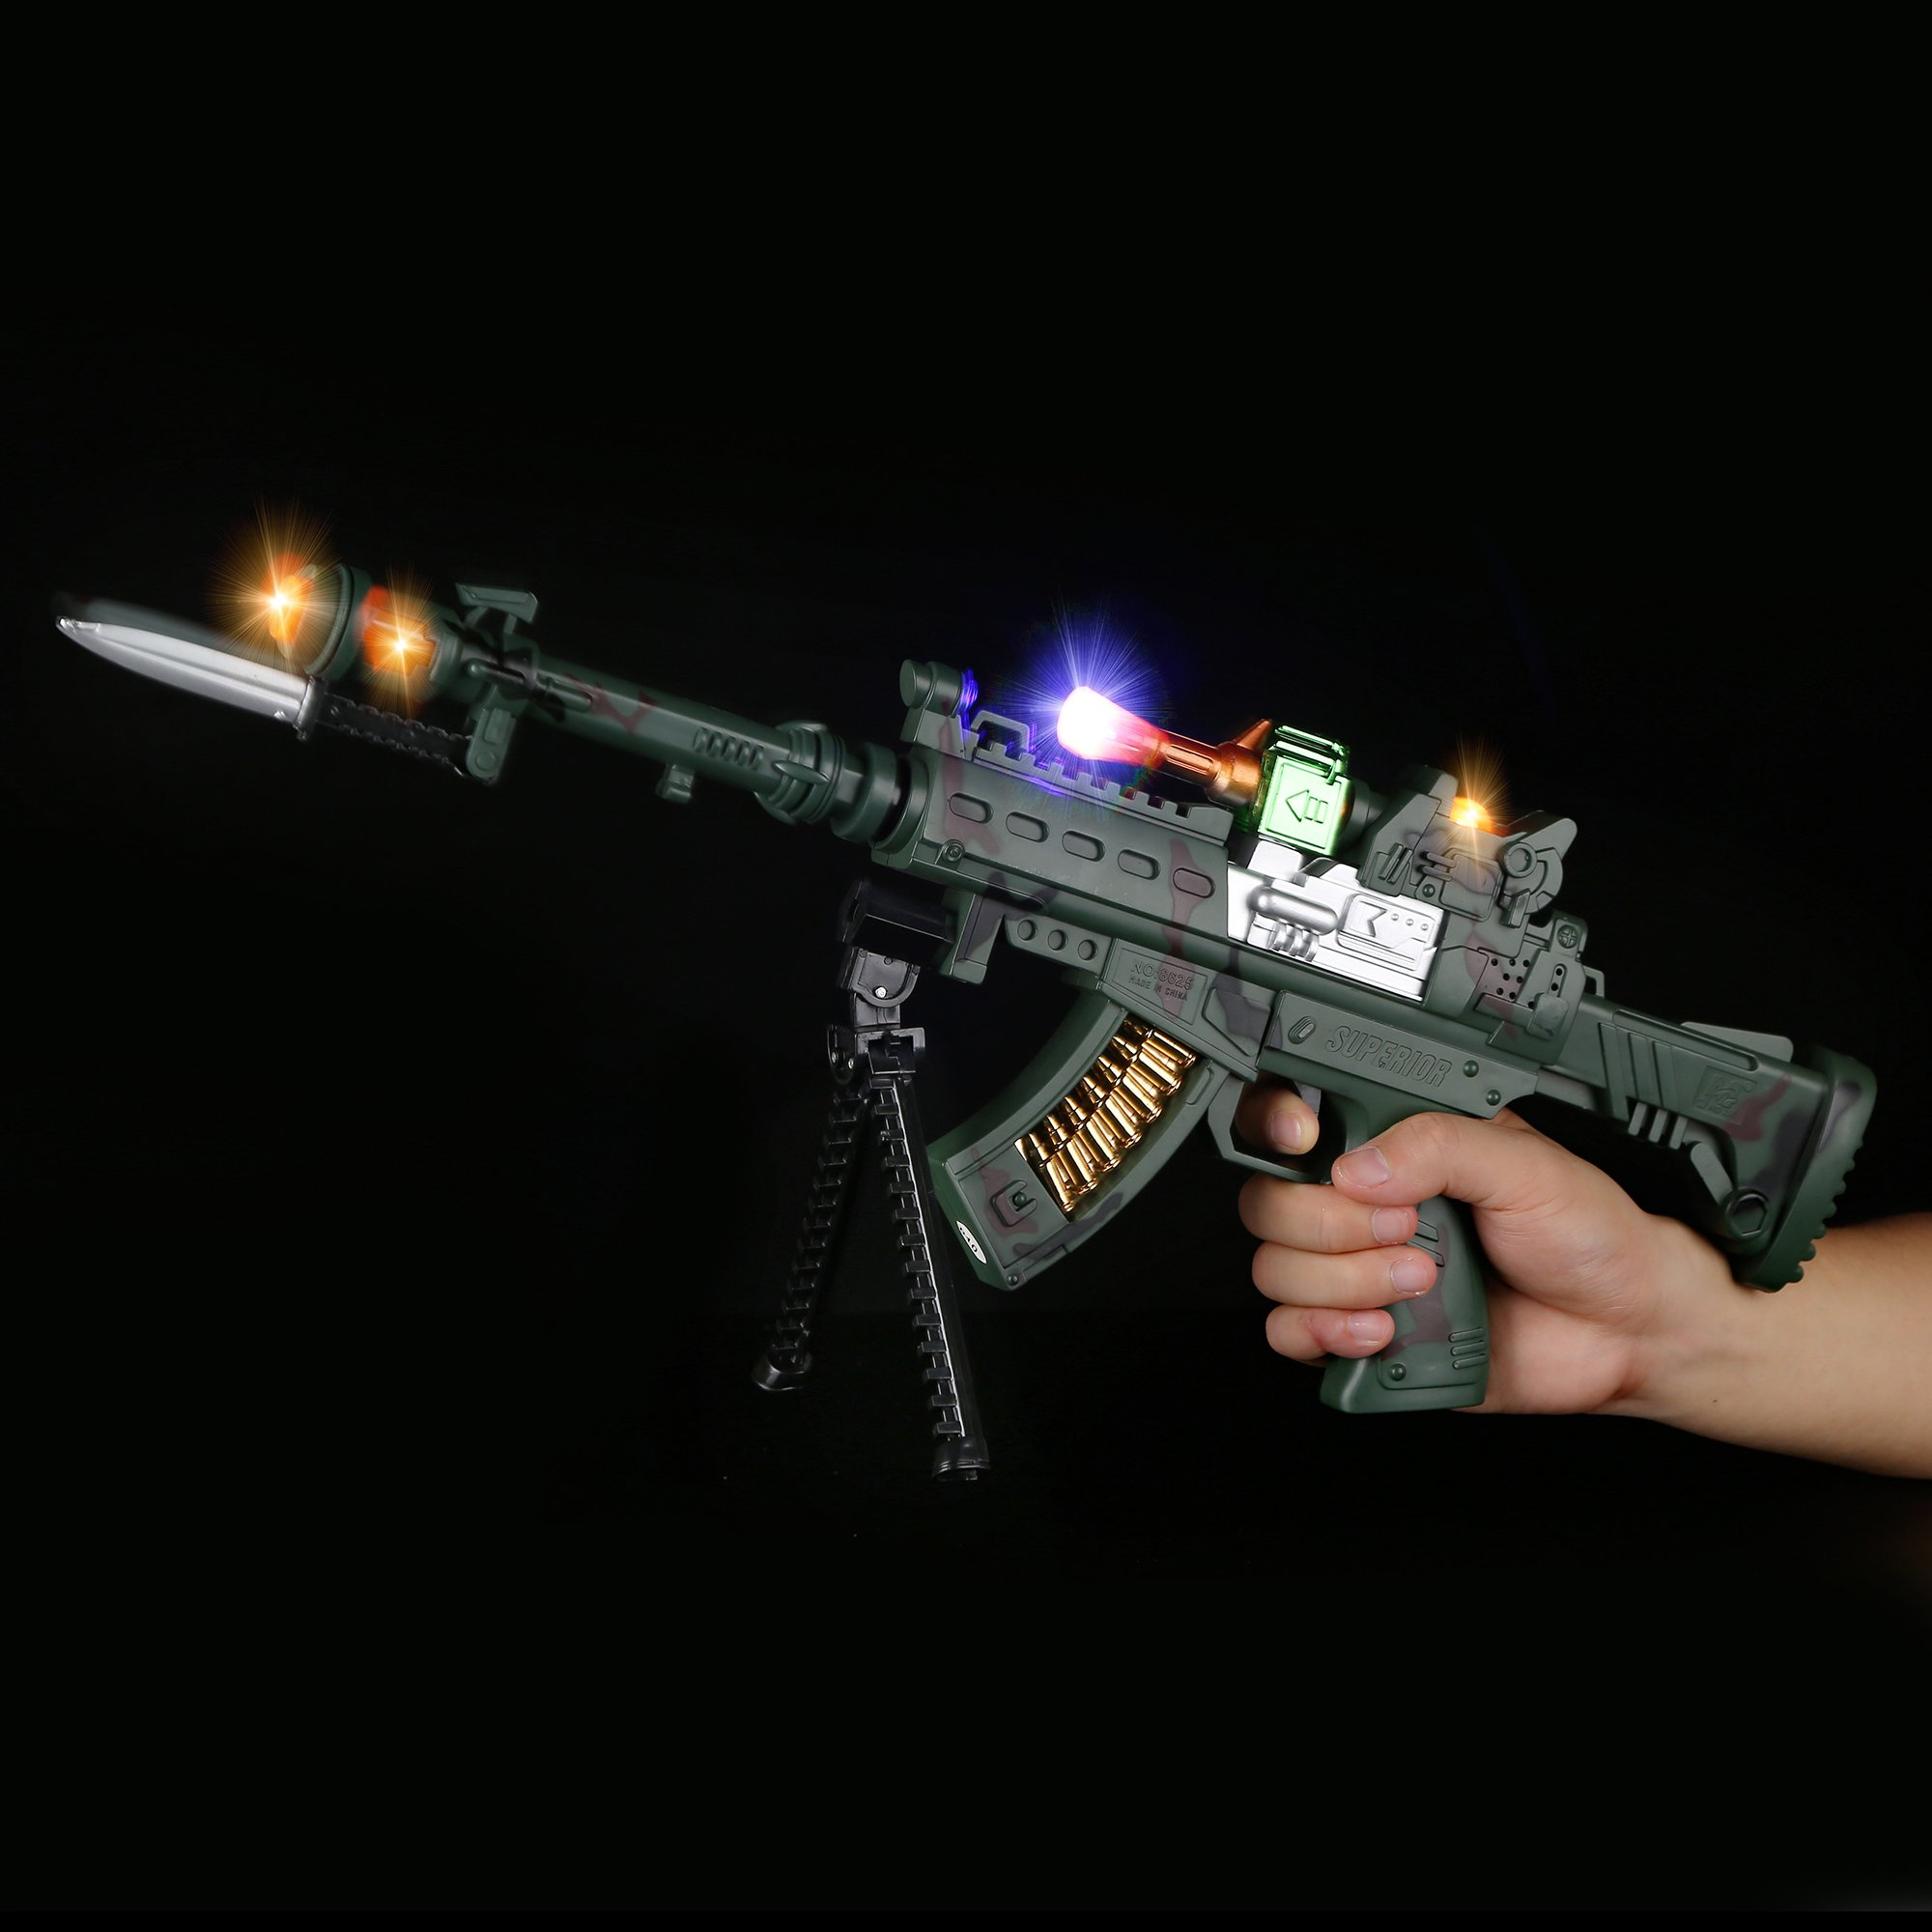 Fun Central AU050 21 Inch LED Light Up Sniper Rifle with Shooting Sounds, LED Sniper Toy Gun - for Christmas Party, Birthday Party, Costume Party, Themed Party,Party Favors, Gifts, Prizes, Rewards